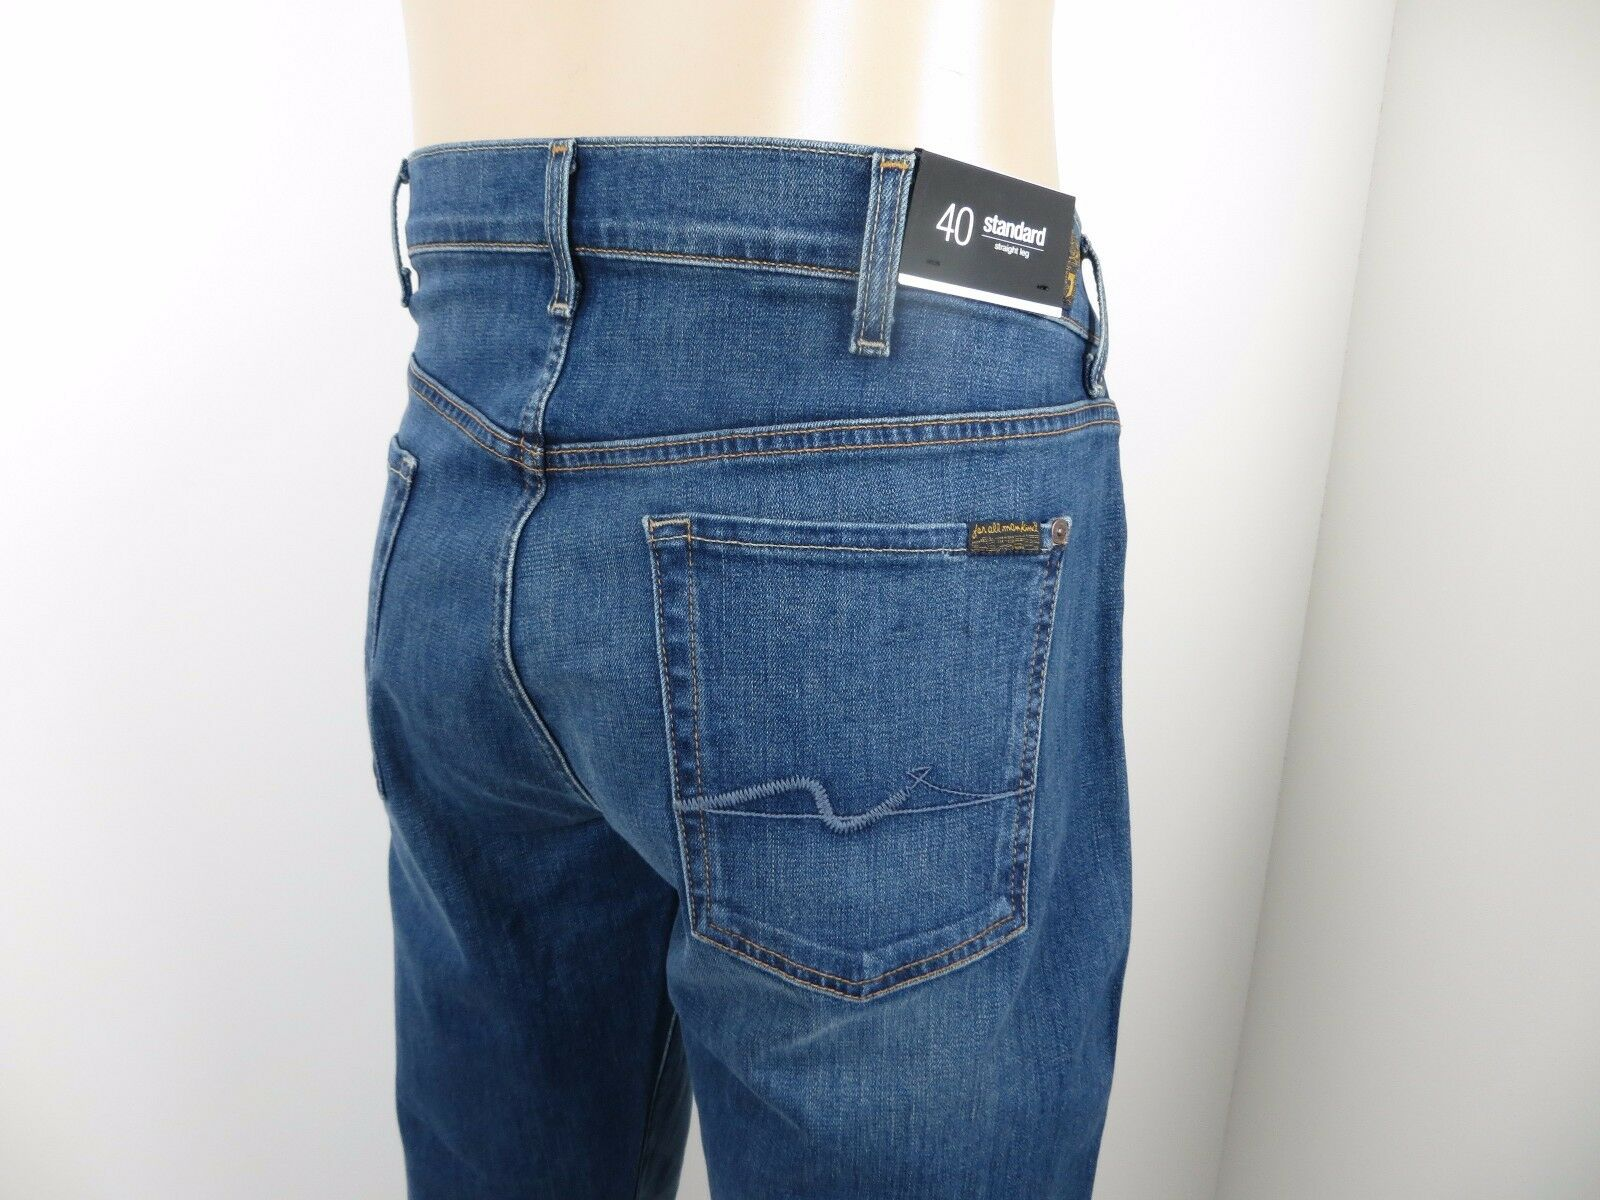 NWT 7 Seven For All Mankind Men's Jeans STANDARD STRAIGHT LEG,  MICC, Size 40